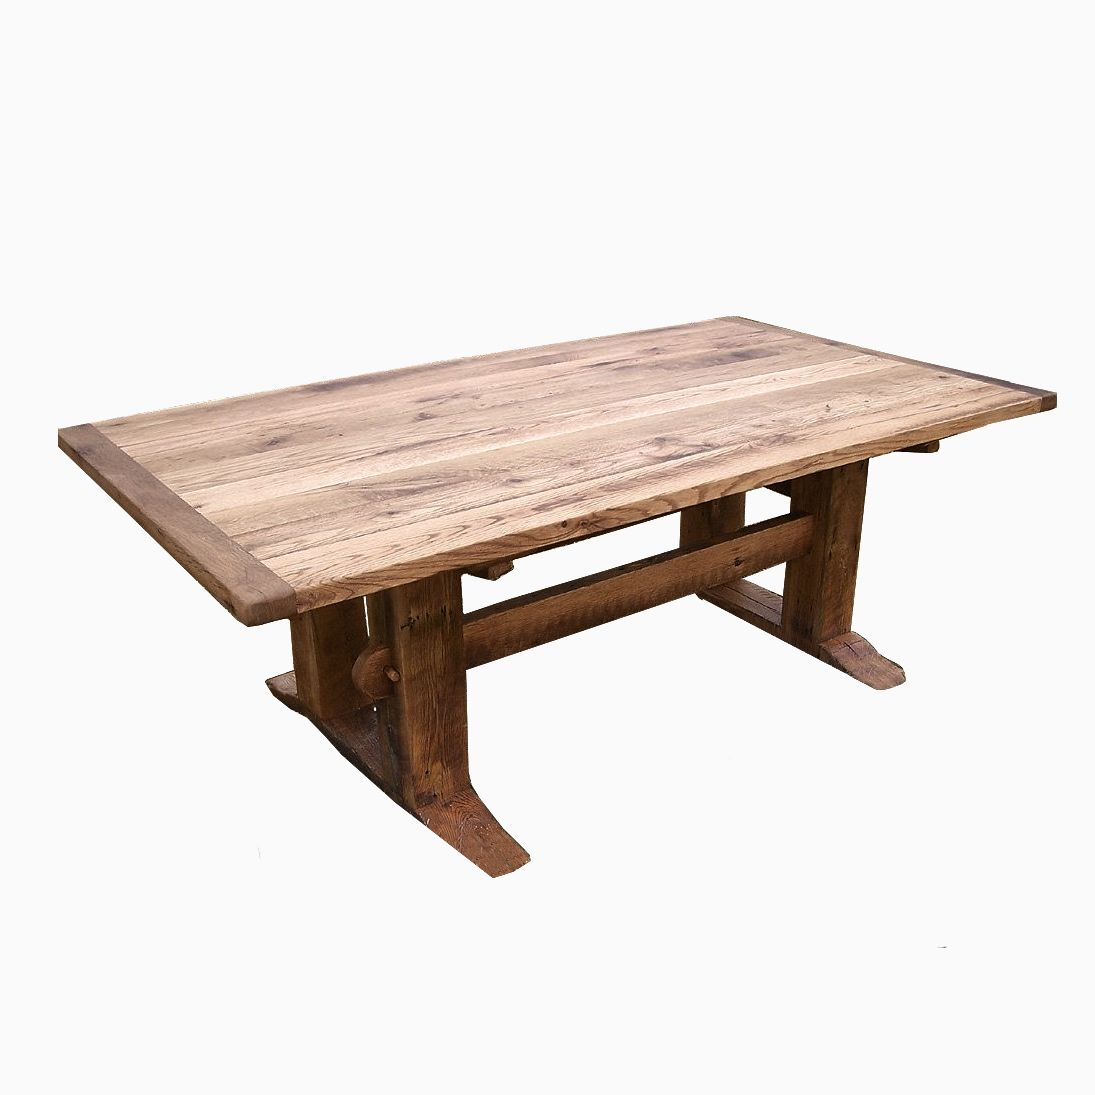 Antique Oak Mission Style Trestle Table By The Strong Wood